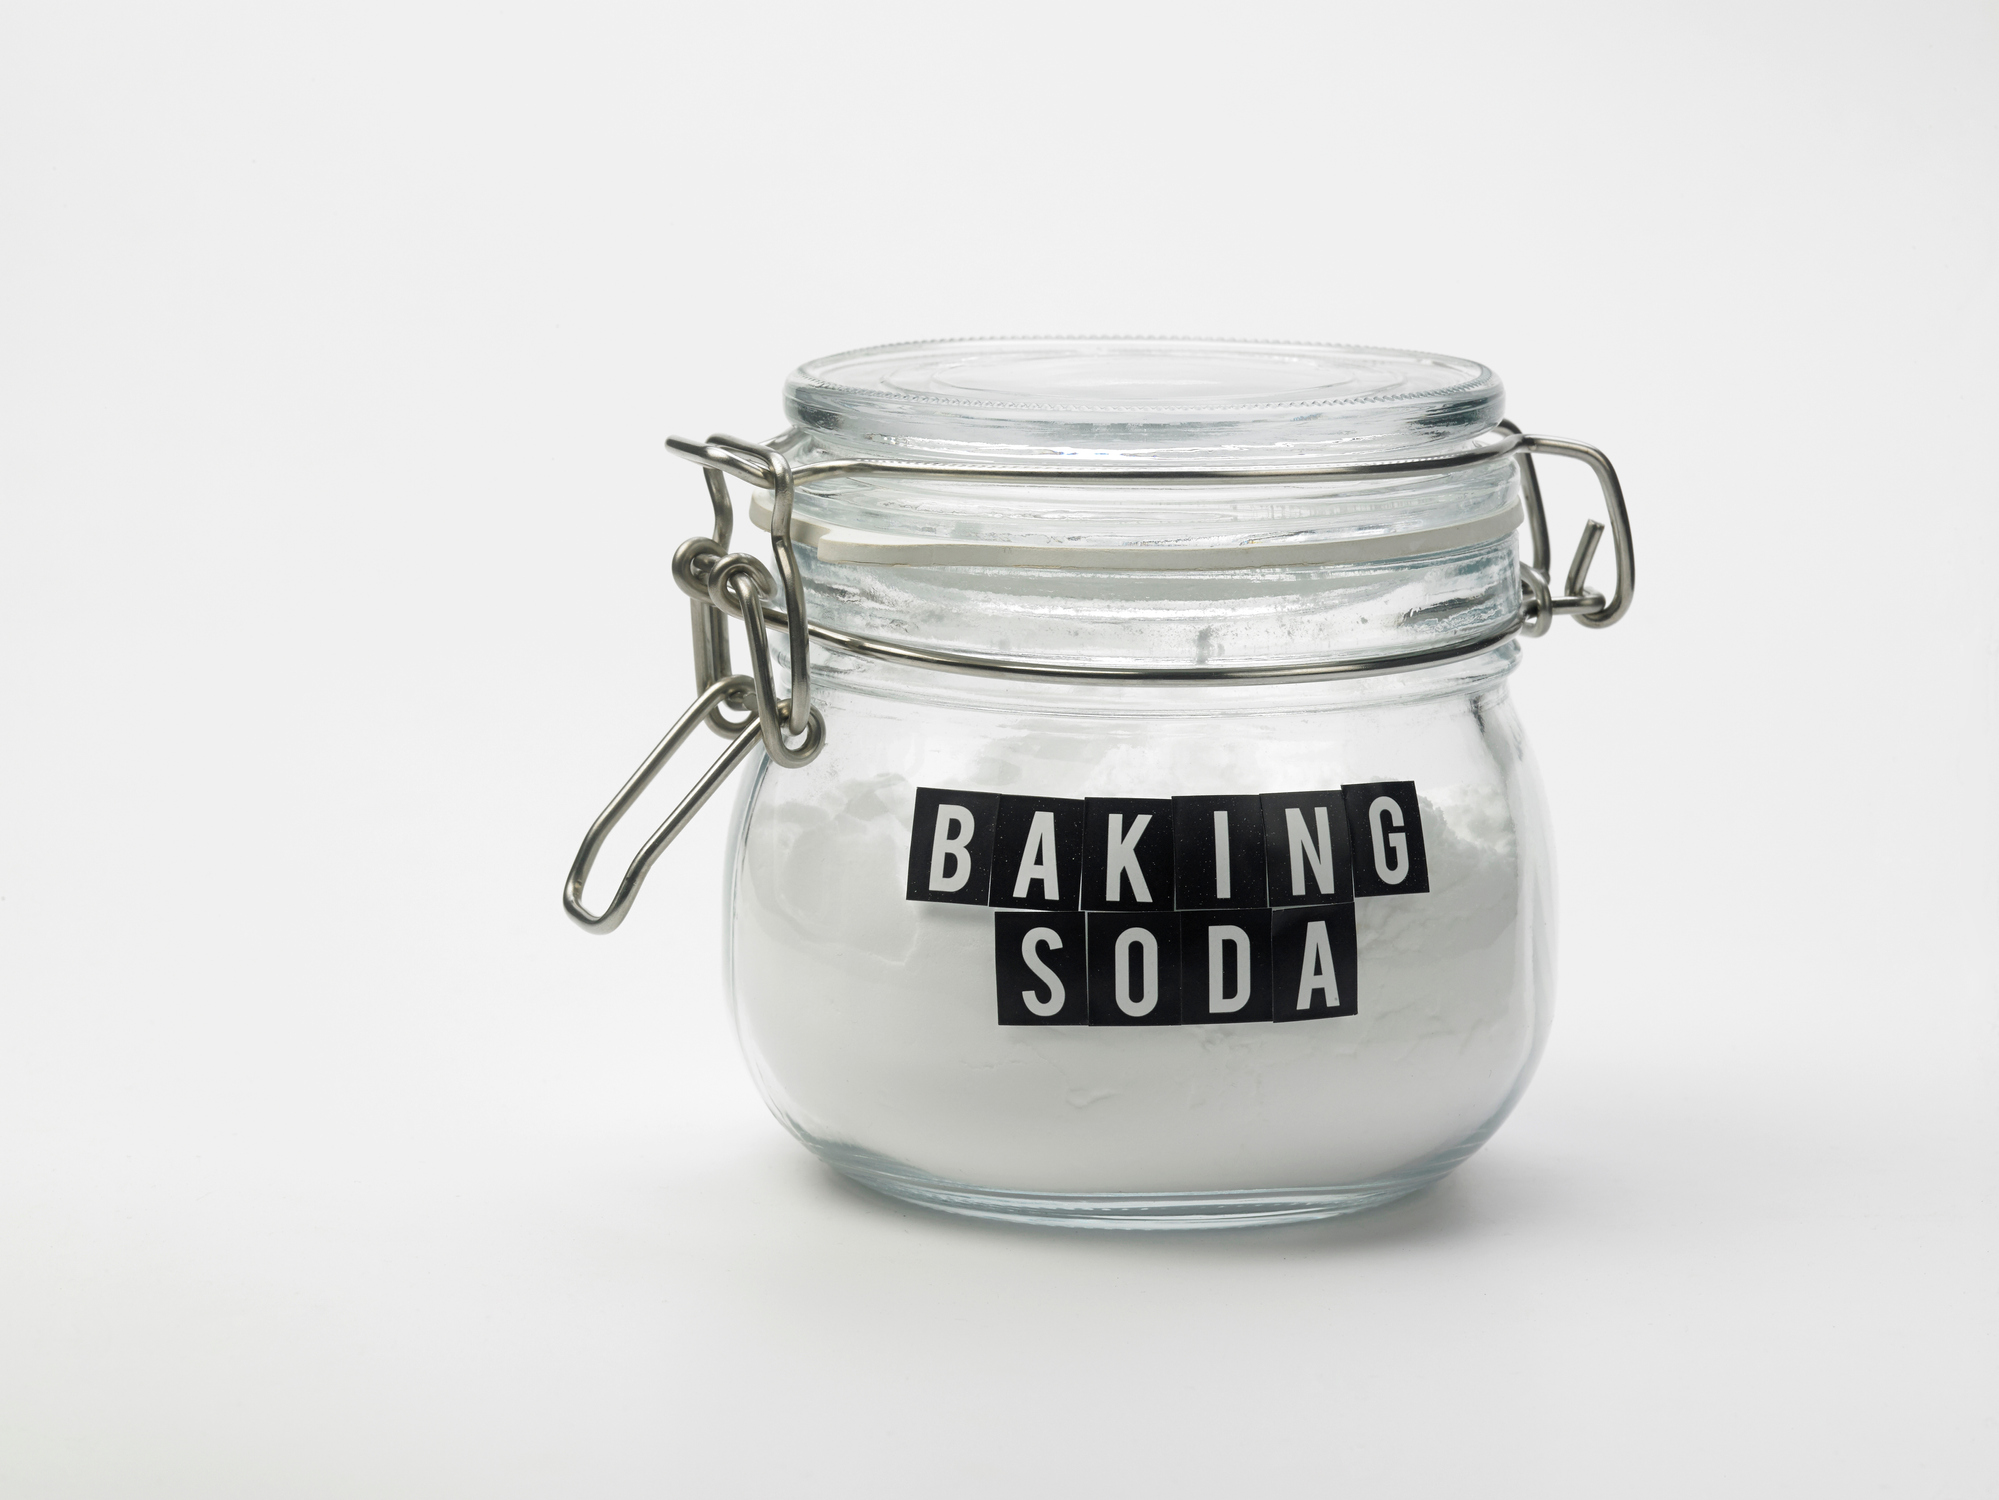 Can I Substitute Baking Soda for Baking Powder?